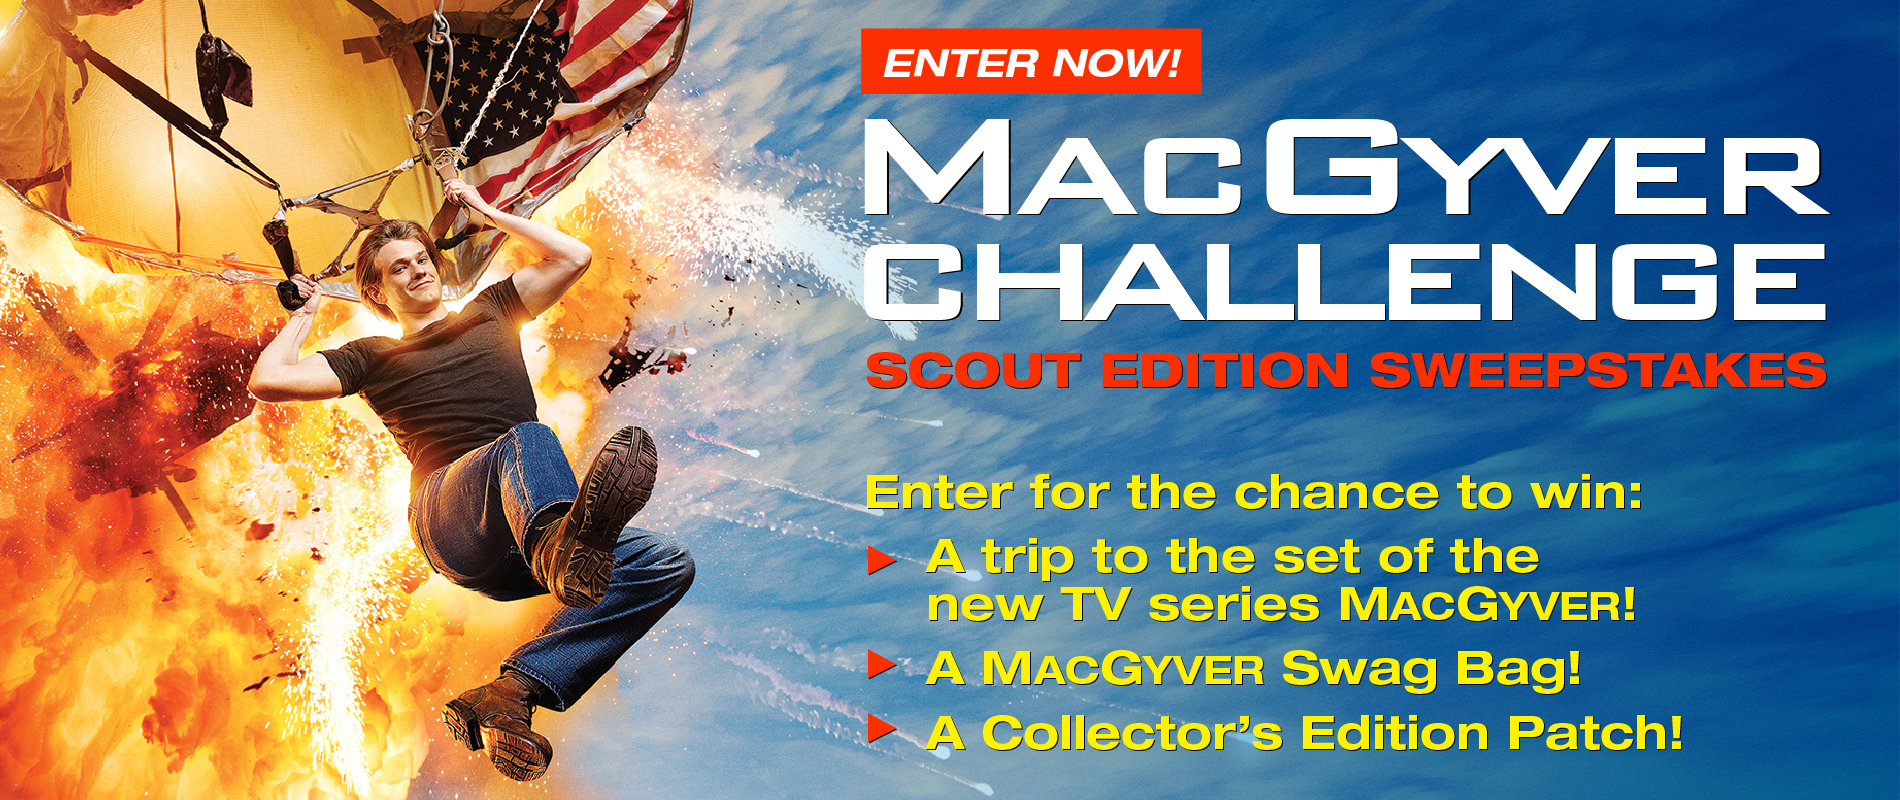 macgyver-scout-sweepstakes-1900×800